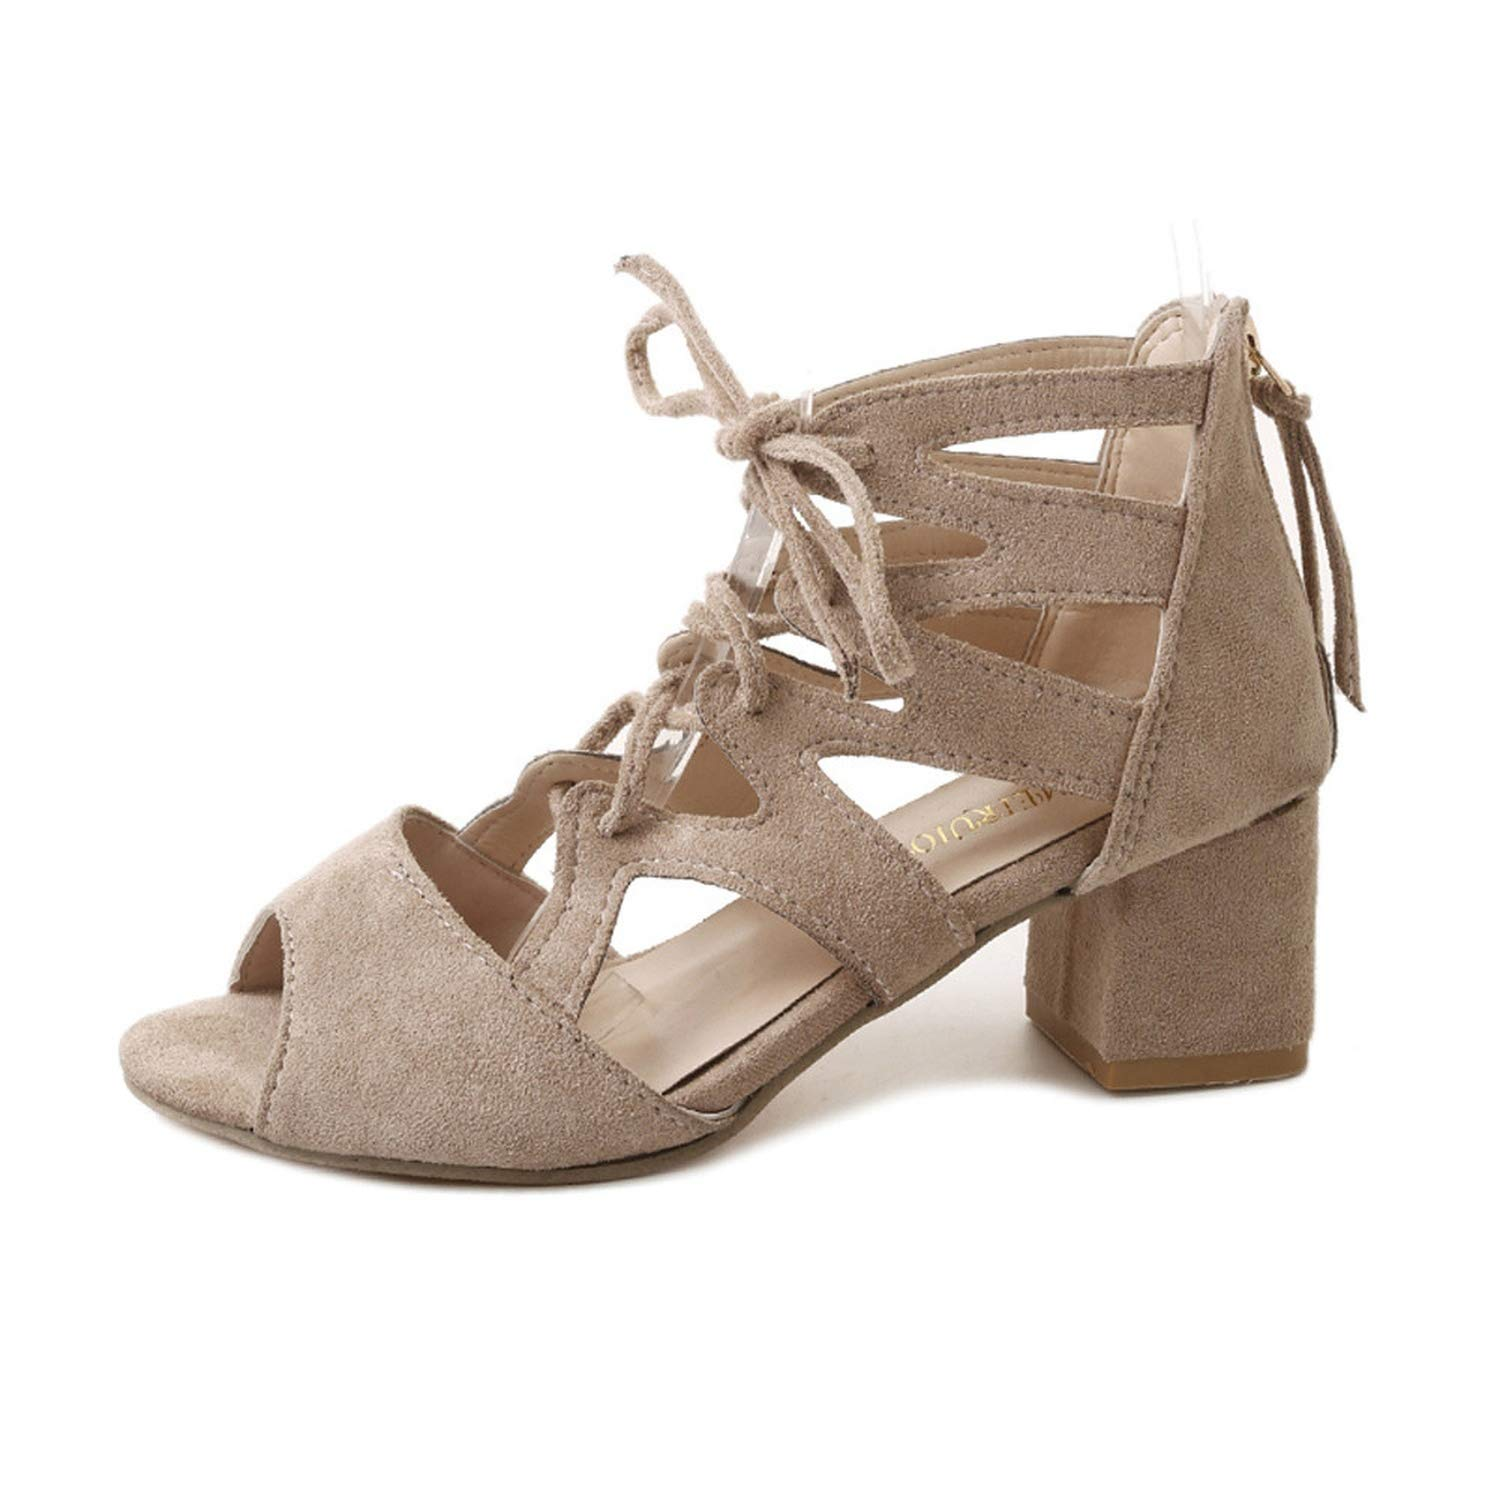 Fashion peep Toe Pumps for Women Ladies Shoes and Sandals Ankle Square Heels Block Party Open Toe Shoes schoenen#G30,Beige,8,United States